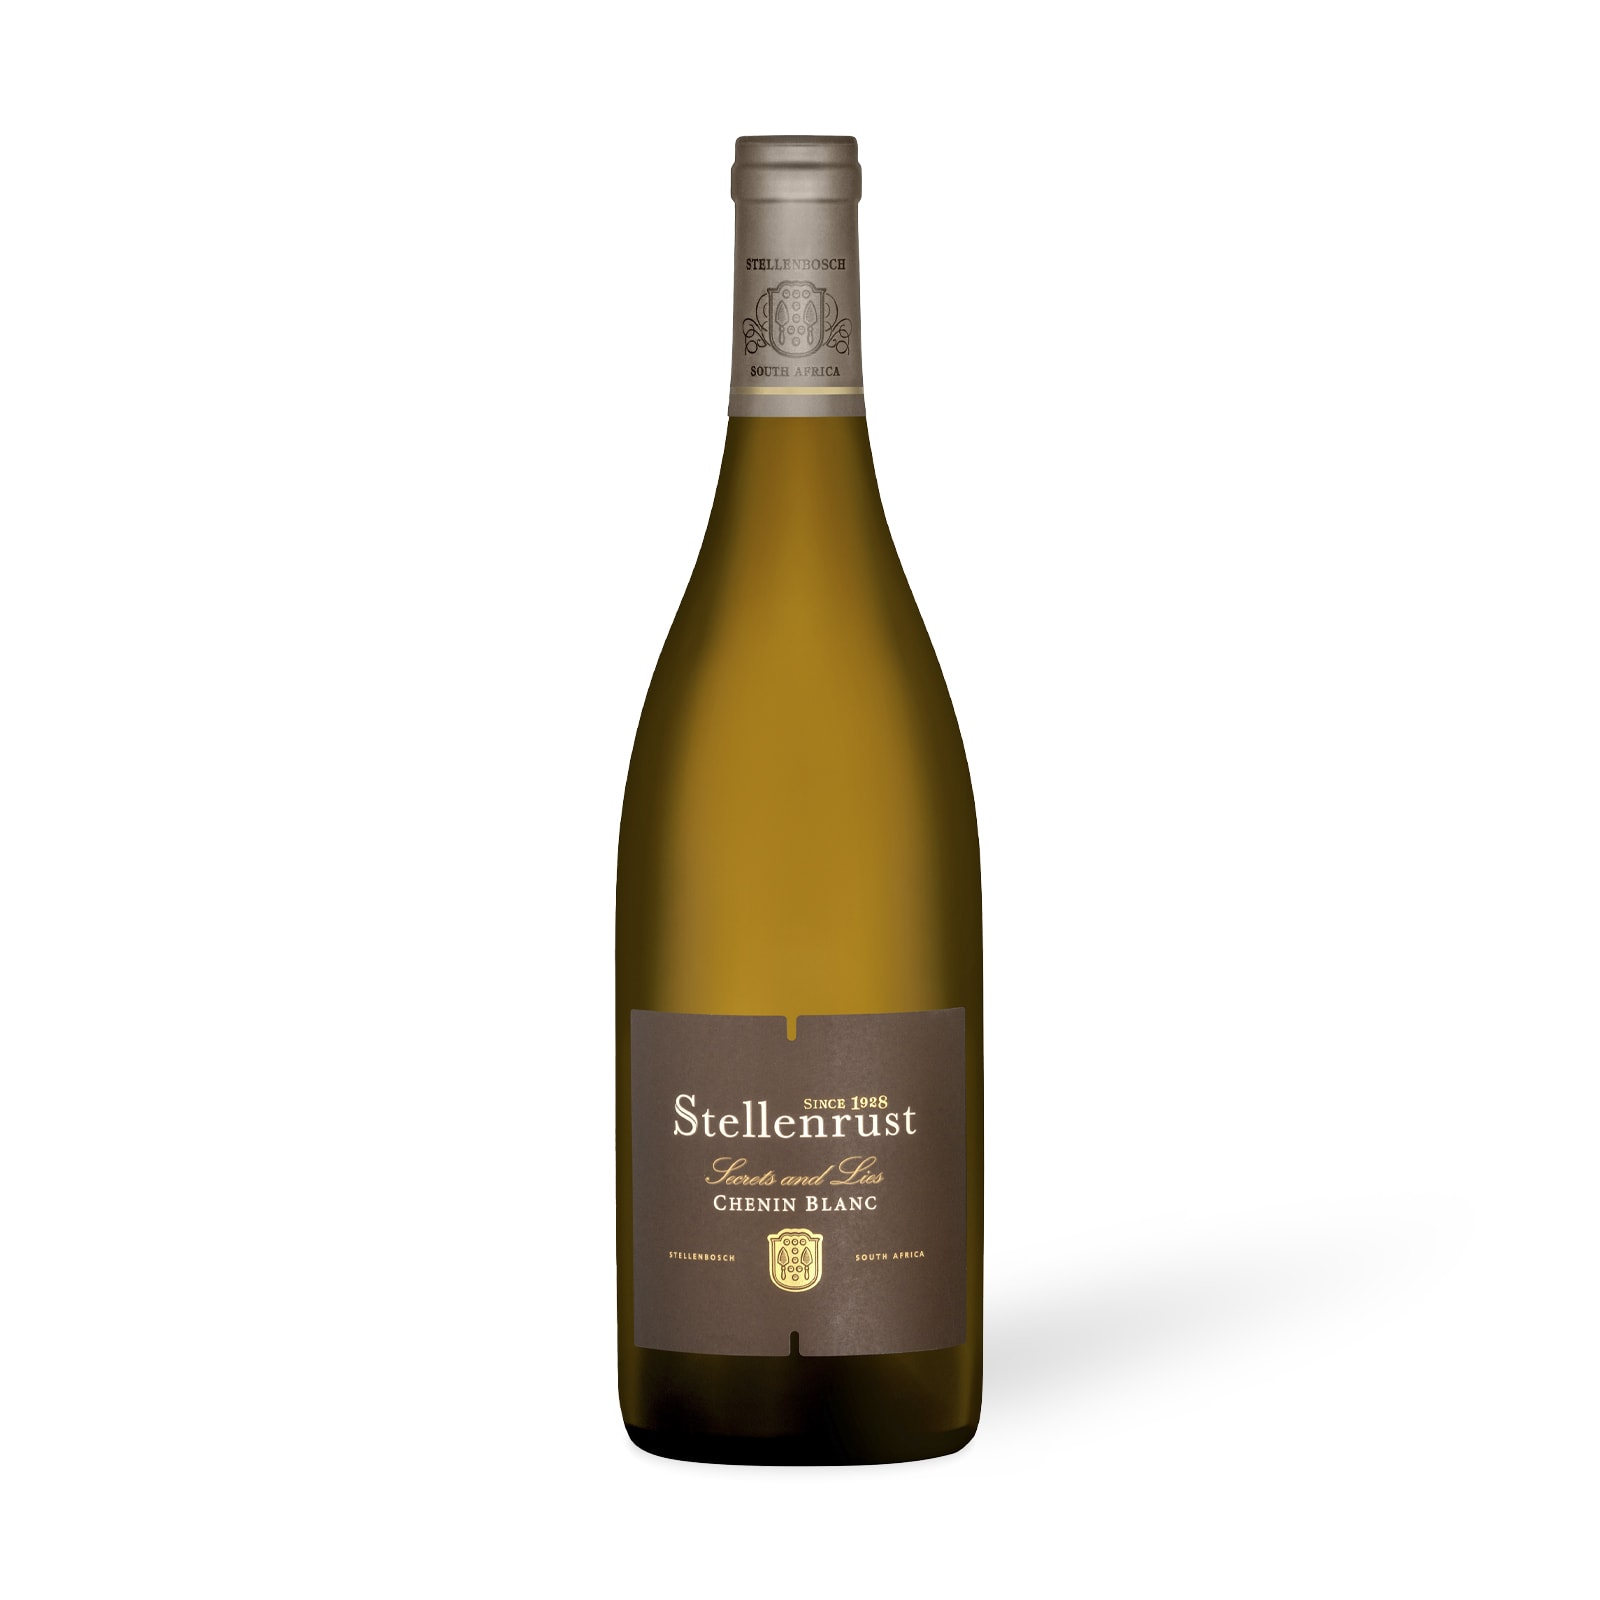 Stellenrust Secrets and Lies Chenin Blanc 2018 VinoSA